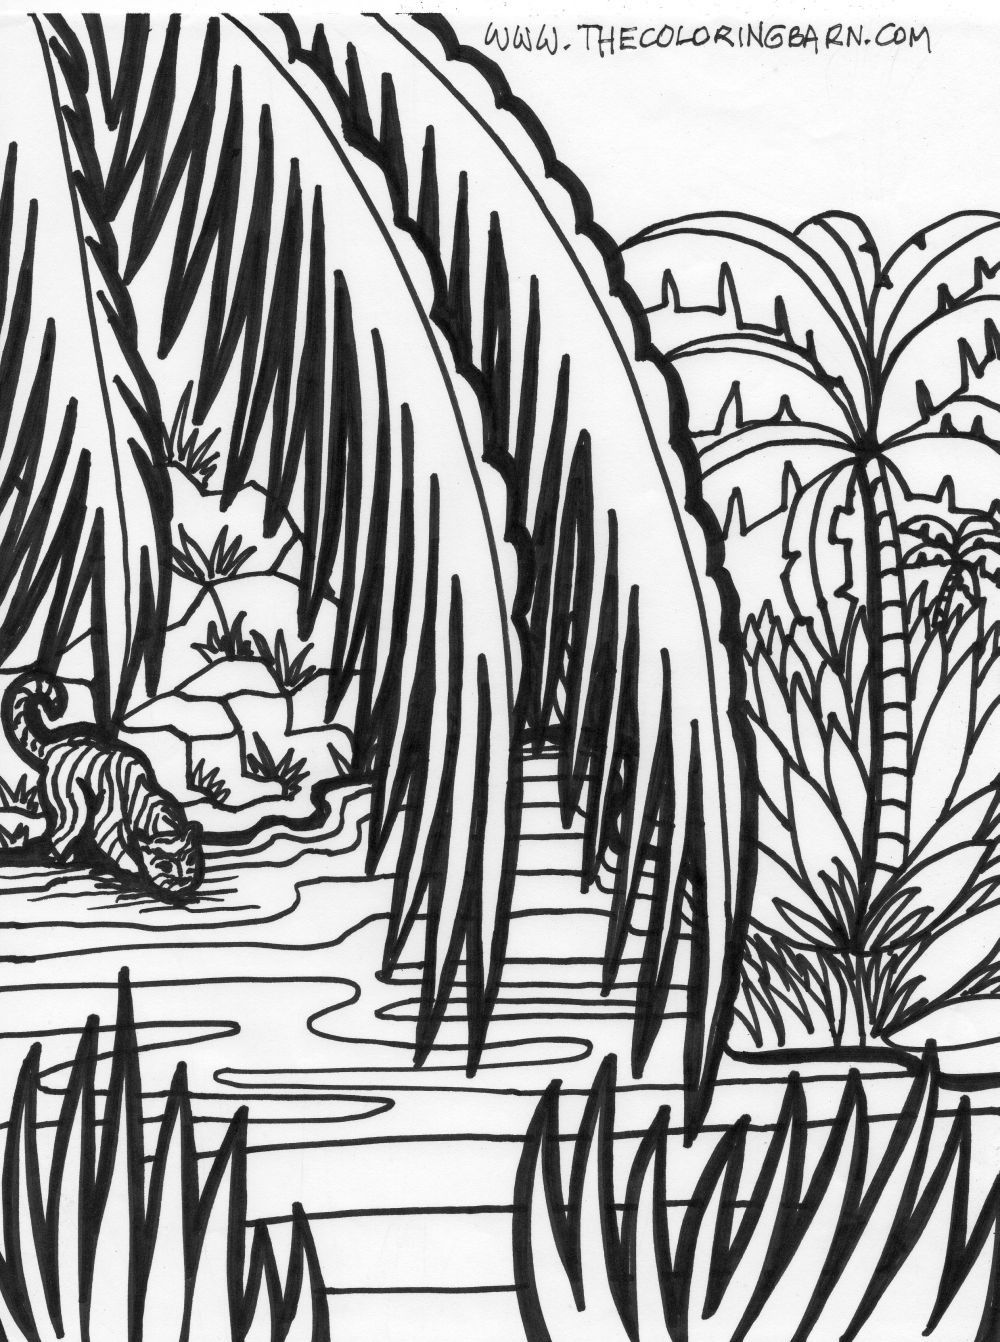 Lovecoloring Com Jungle Scene Jungle Coloring Pages Coloring Pages [ 1342 x 1000 Pixel ]